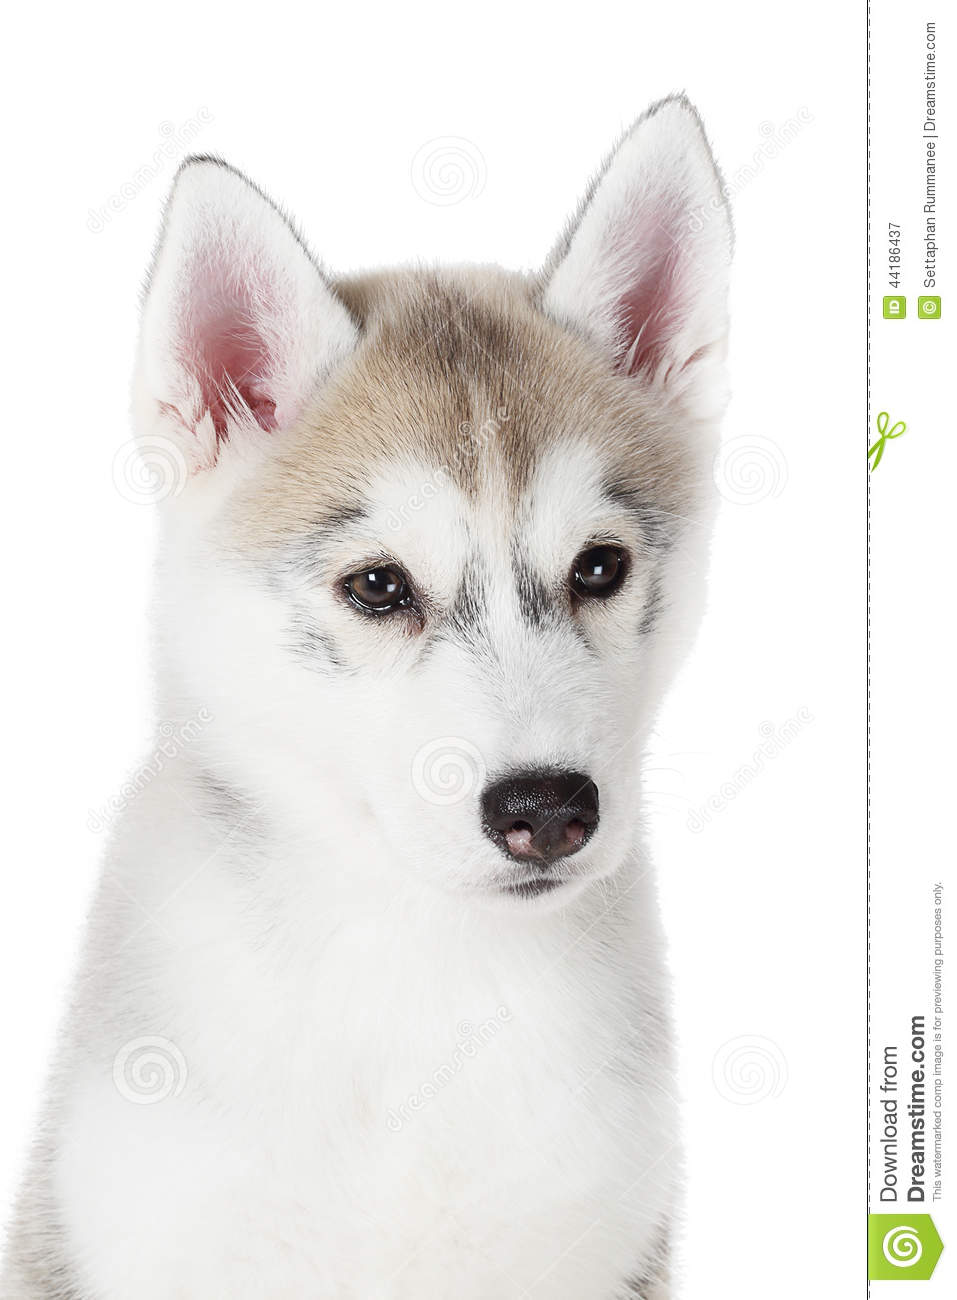 Husky 2 Meses Siberian Husky Small 2 Months Isolated On White Background Stock